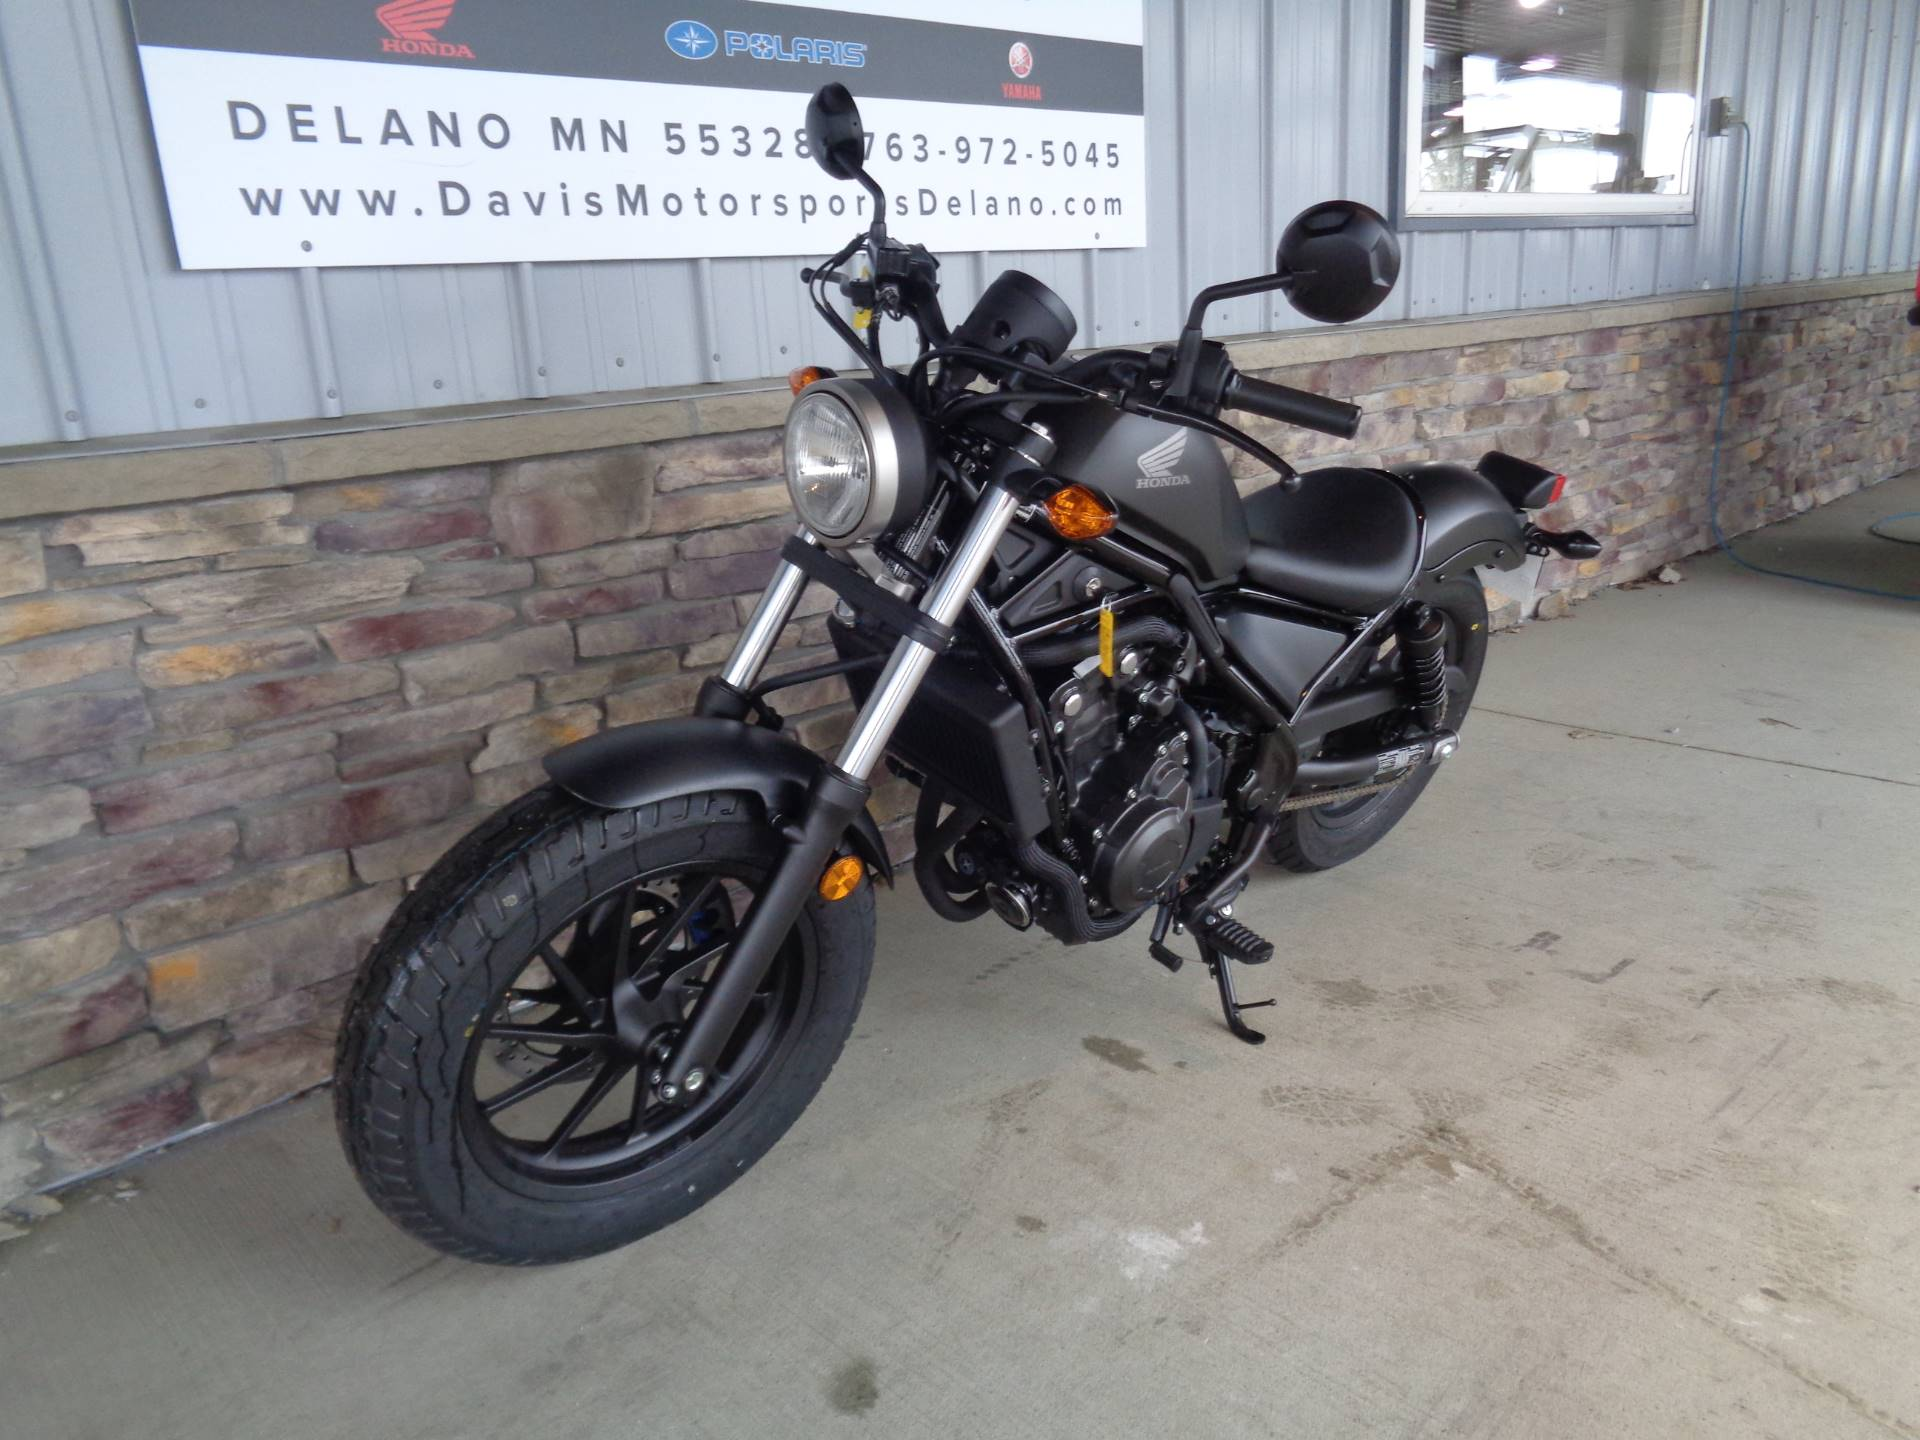 2019 Honda Rebel 500 in Delano, Minnesota - Photo 4